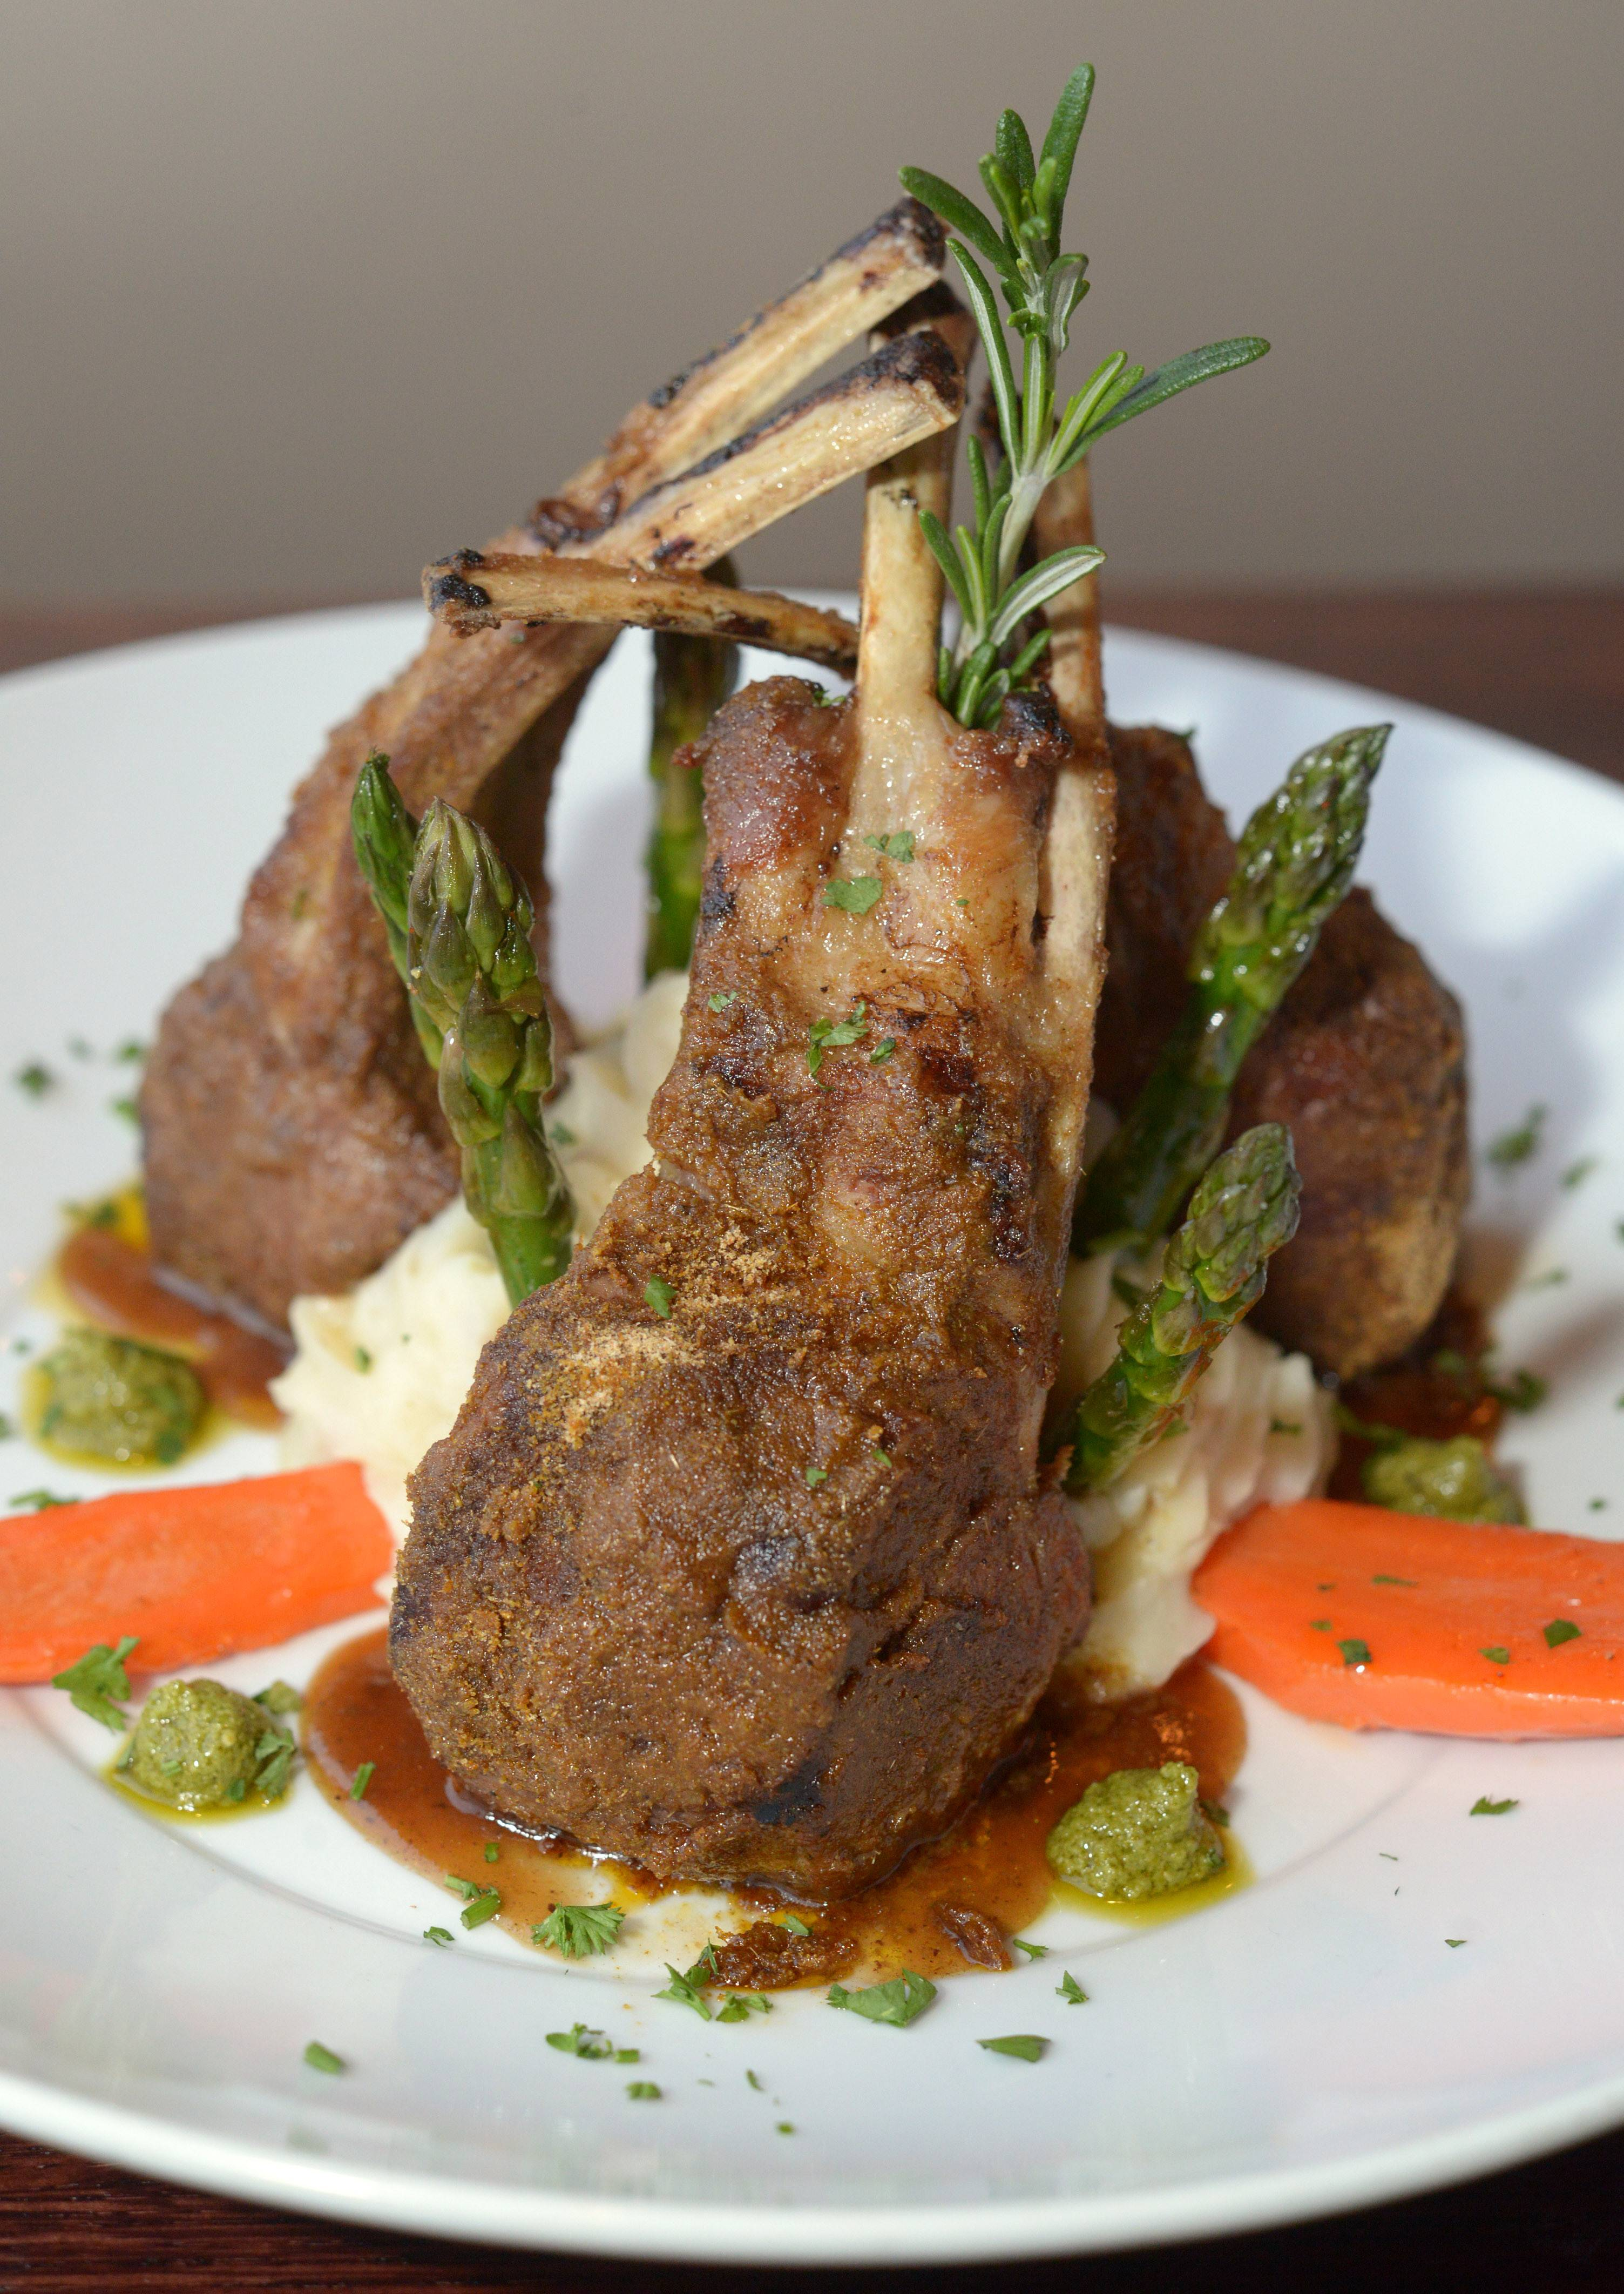 Chef Josef Yurisich's cumin- and garlic-crusted Australian lamb chops come with garlic mashed potatoes, roasted carrots and asparagus at Top Table in St. Charles.